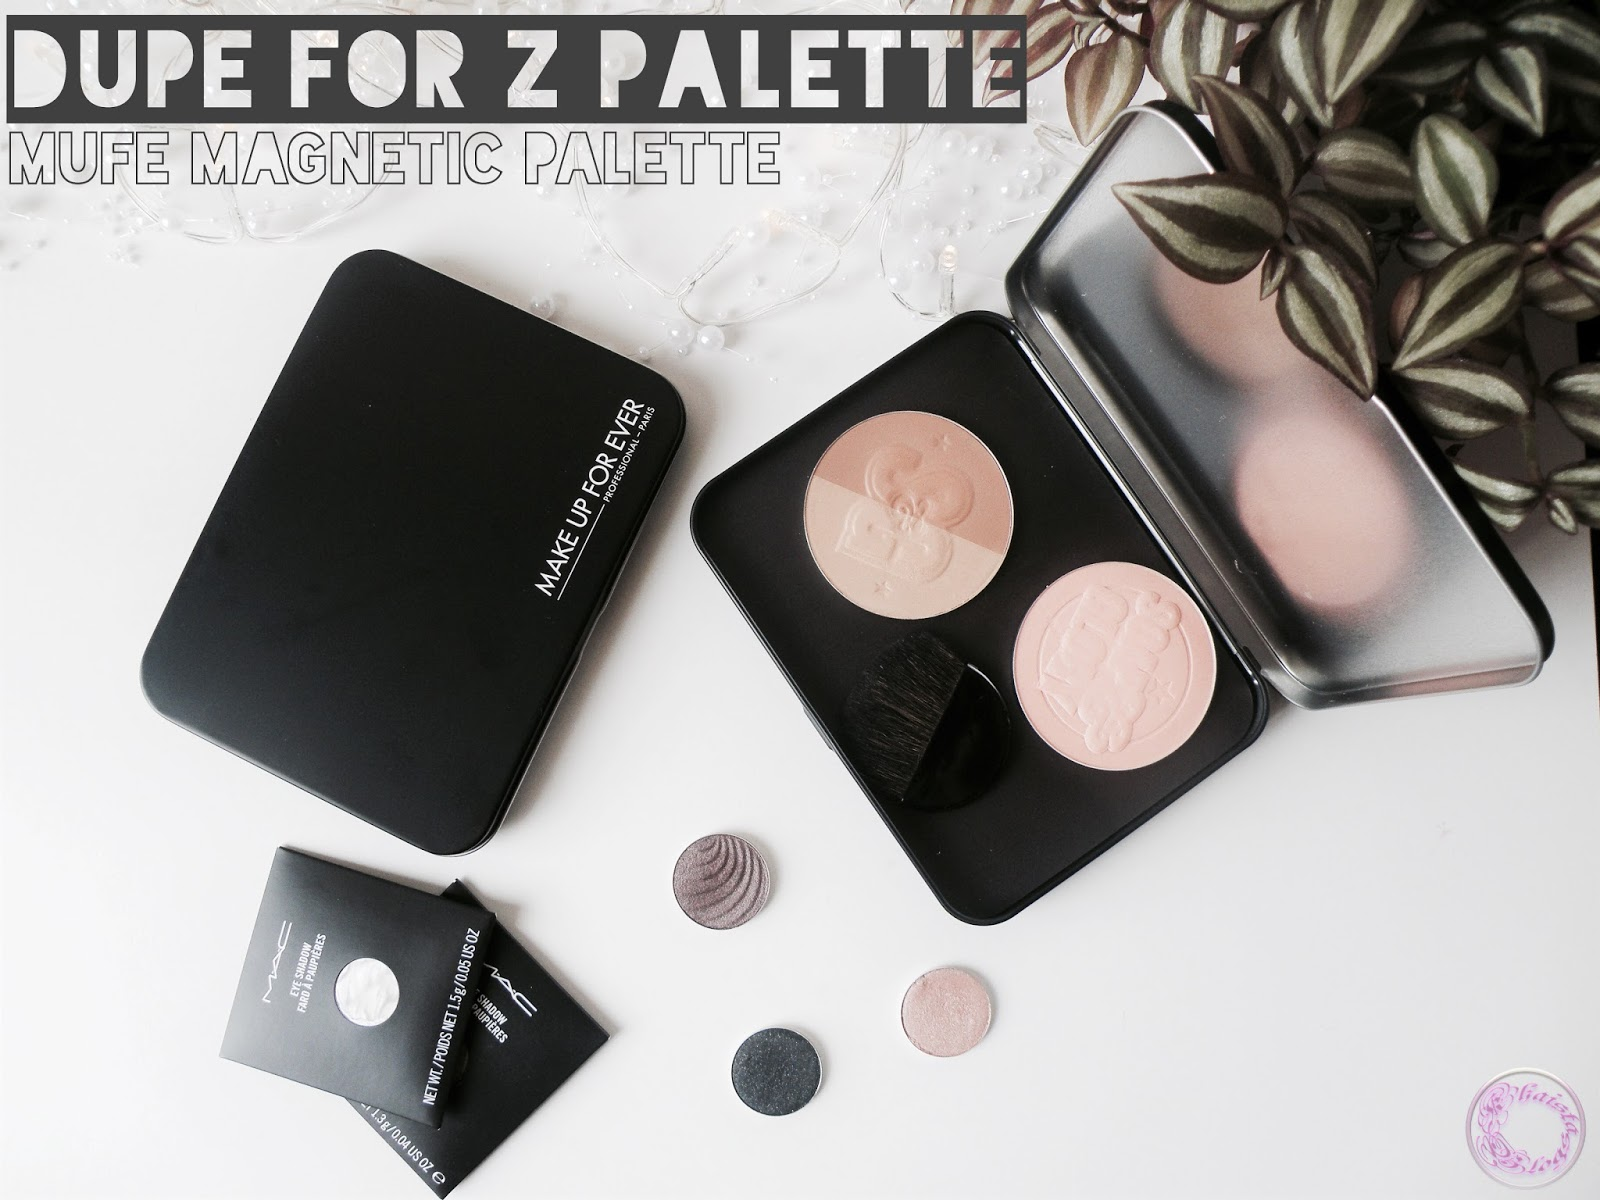 MUFE Empty Magnetic Palette Review (Possible dupe for Z Palette!!!)